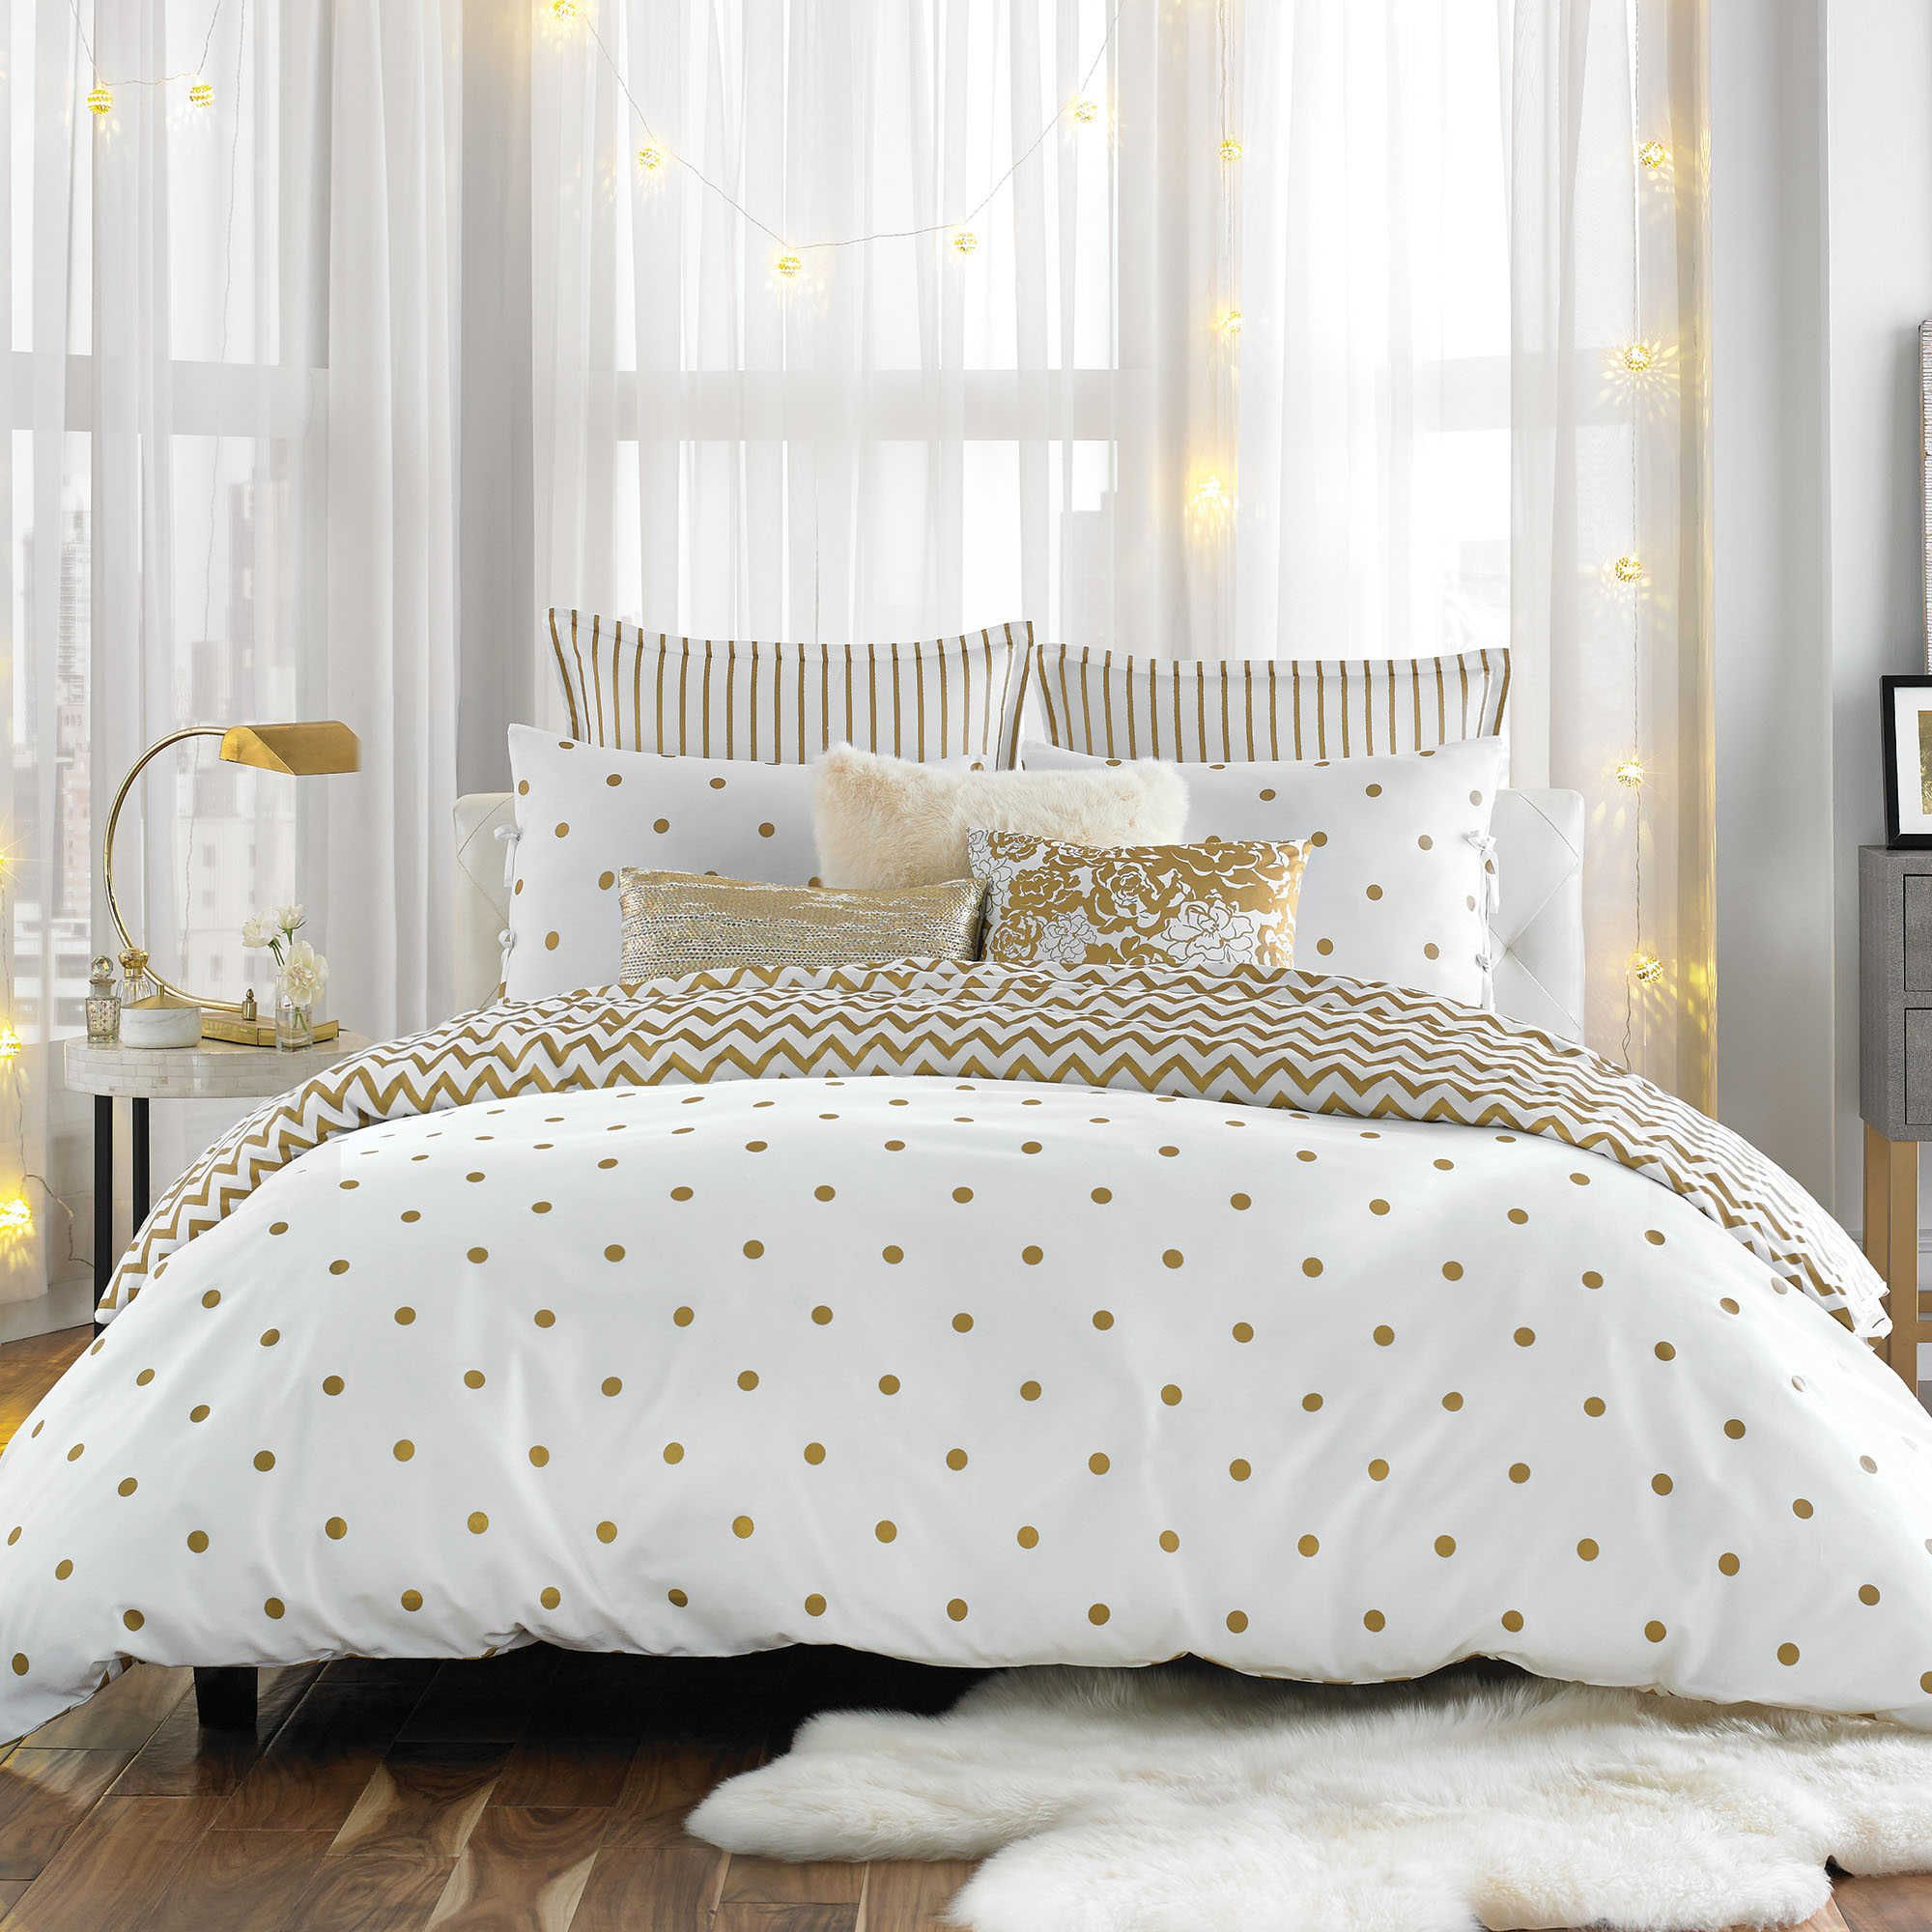 Anthology Gold Glam Twin Twin Xl Comforter Set Comforter Sets White And Gold Bedding Luxury Bedroom Decor